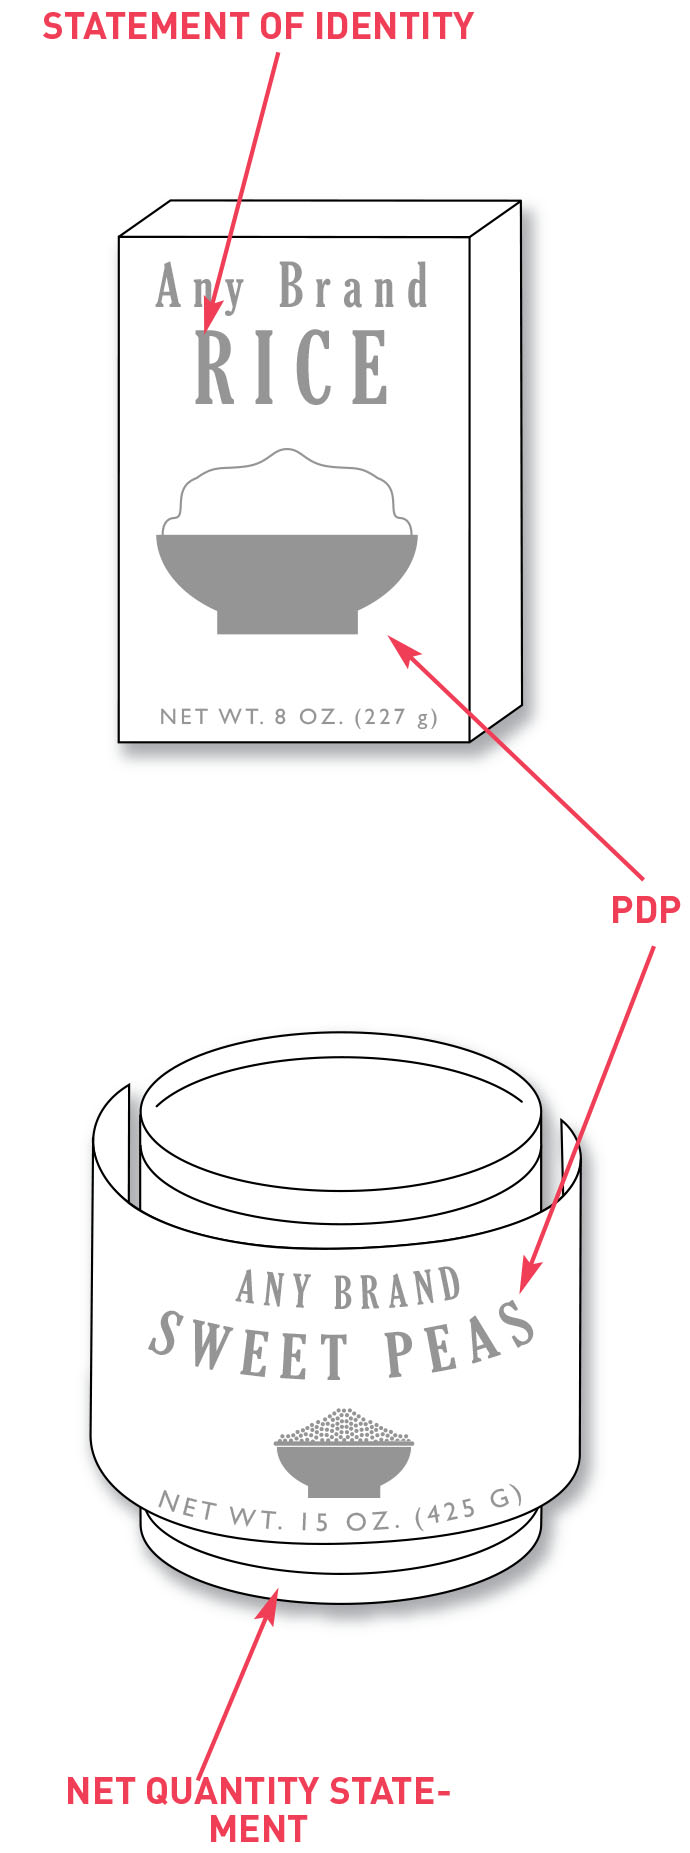 Box and can indicating the Principal Display Panel (PDP).